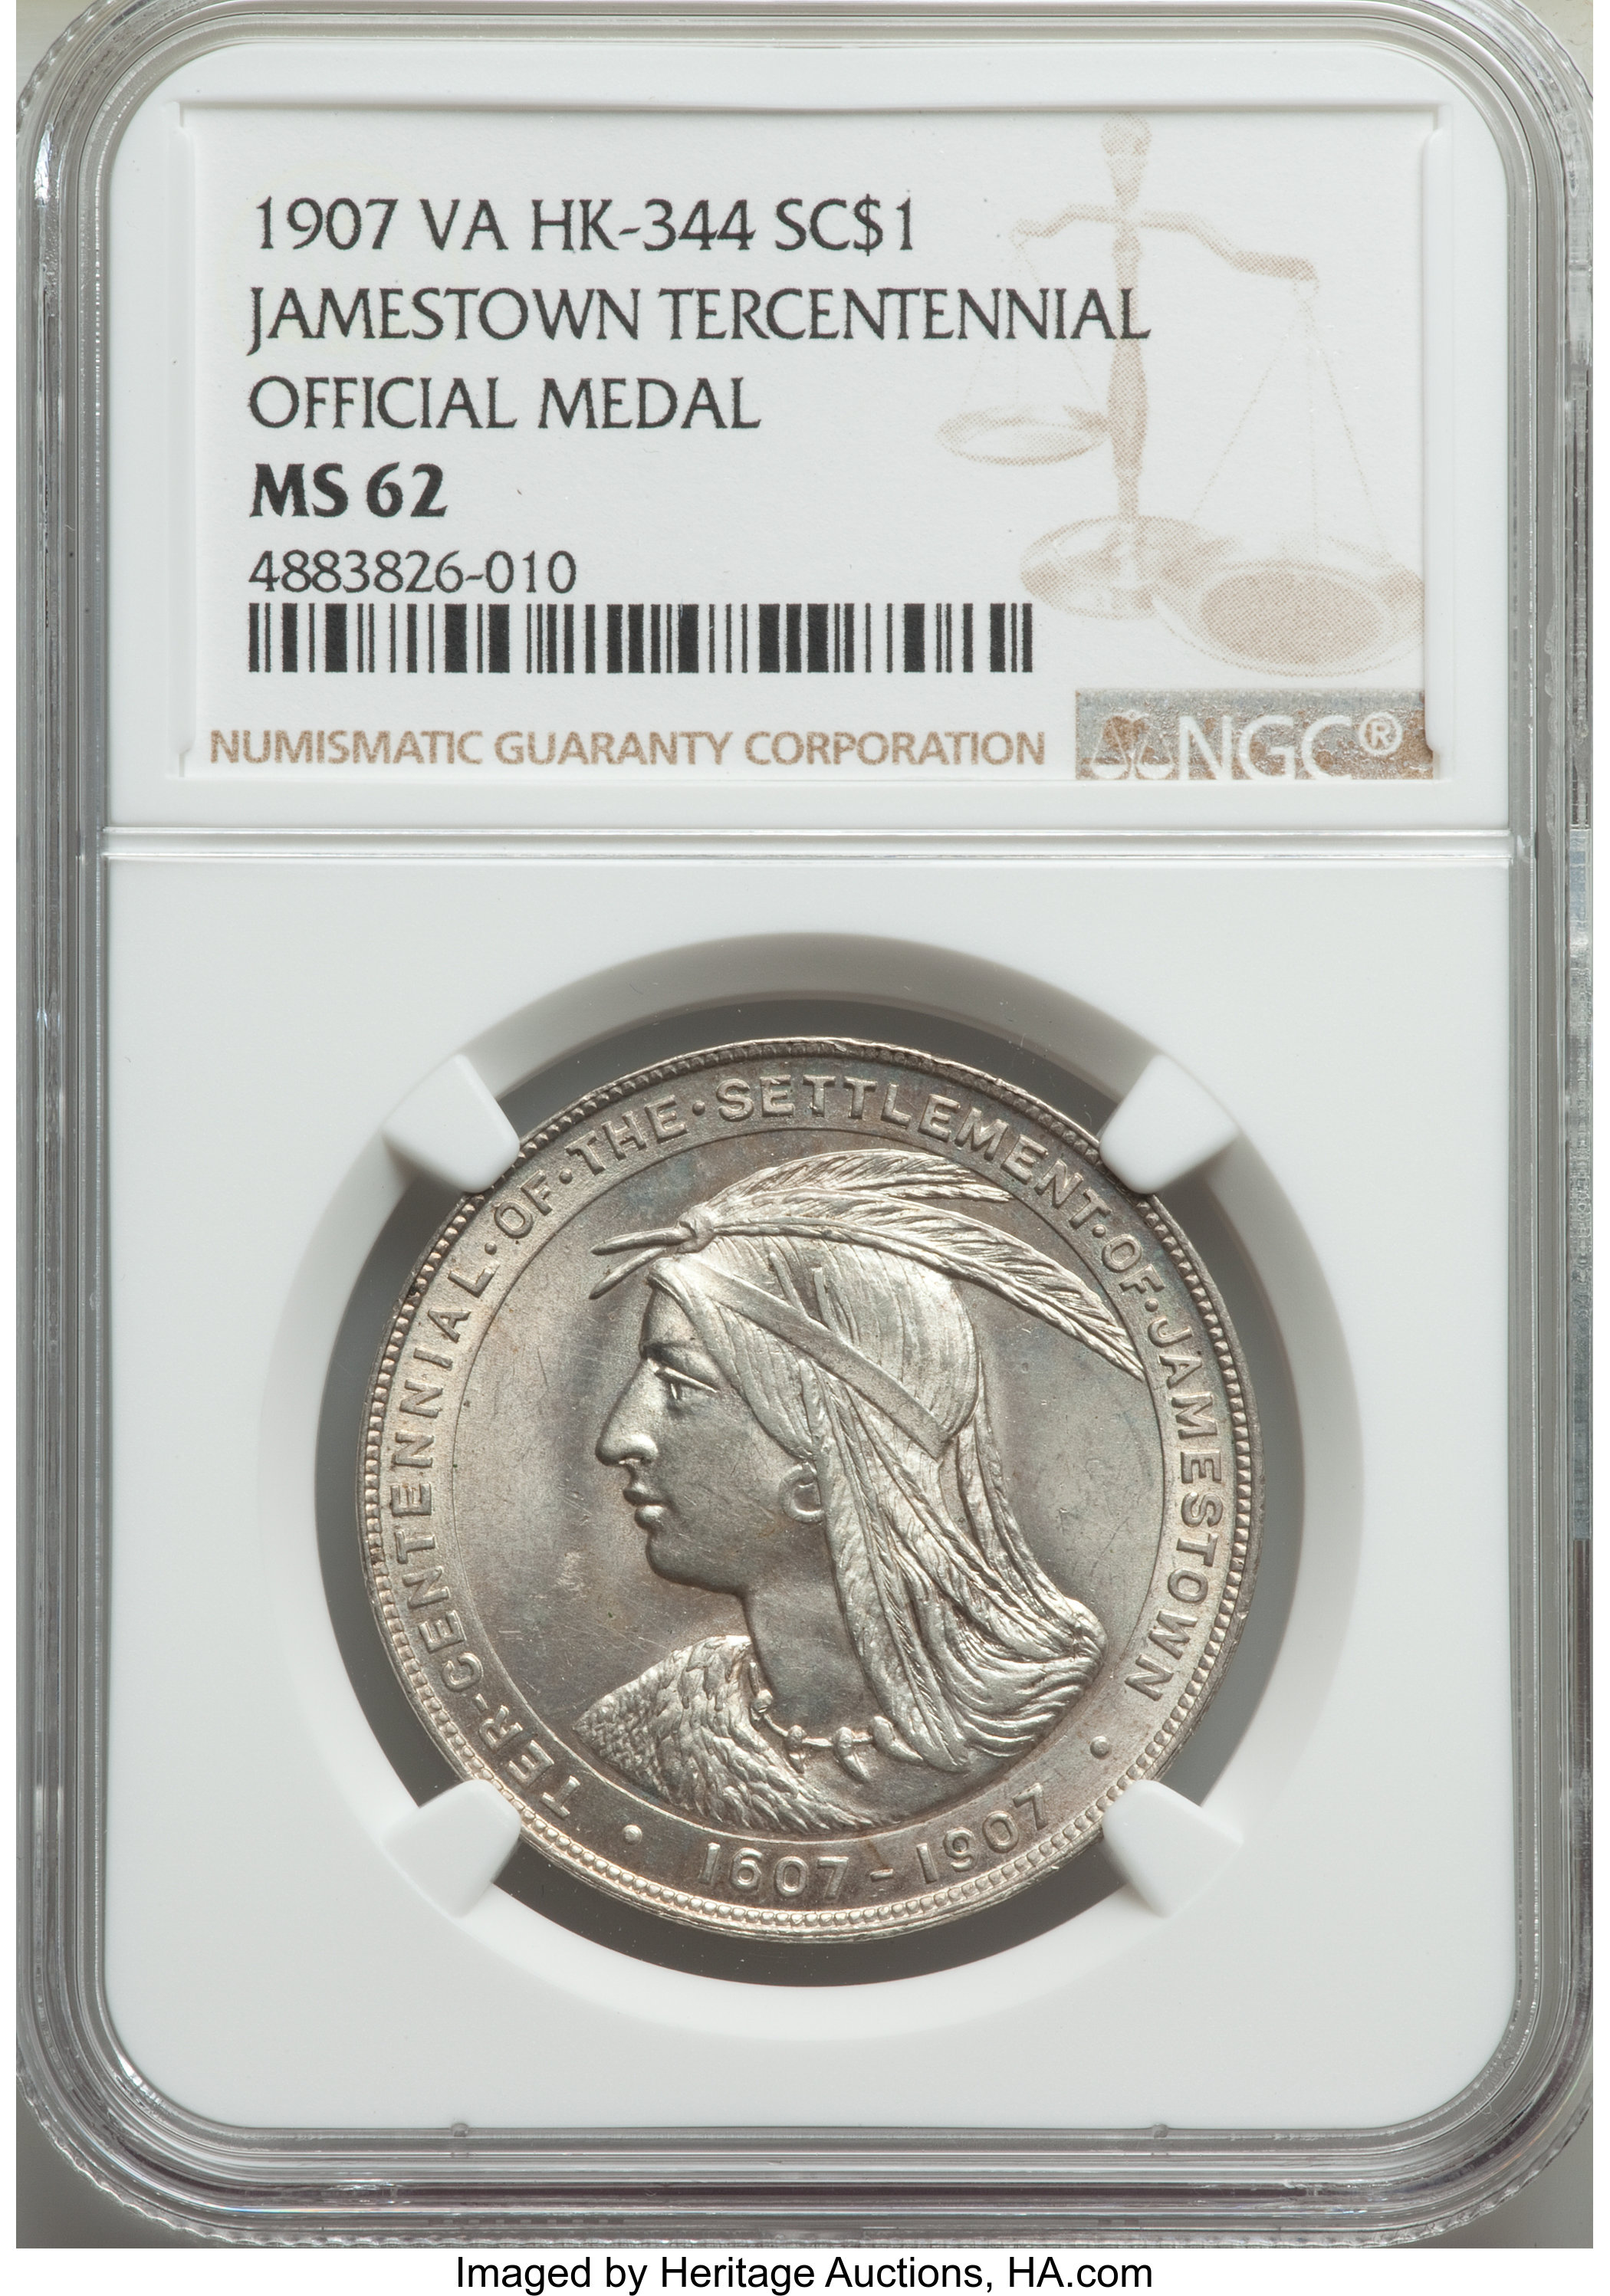 sample image for 1907 Jamestown, Official, Silver SC$1 MS (HK-344)